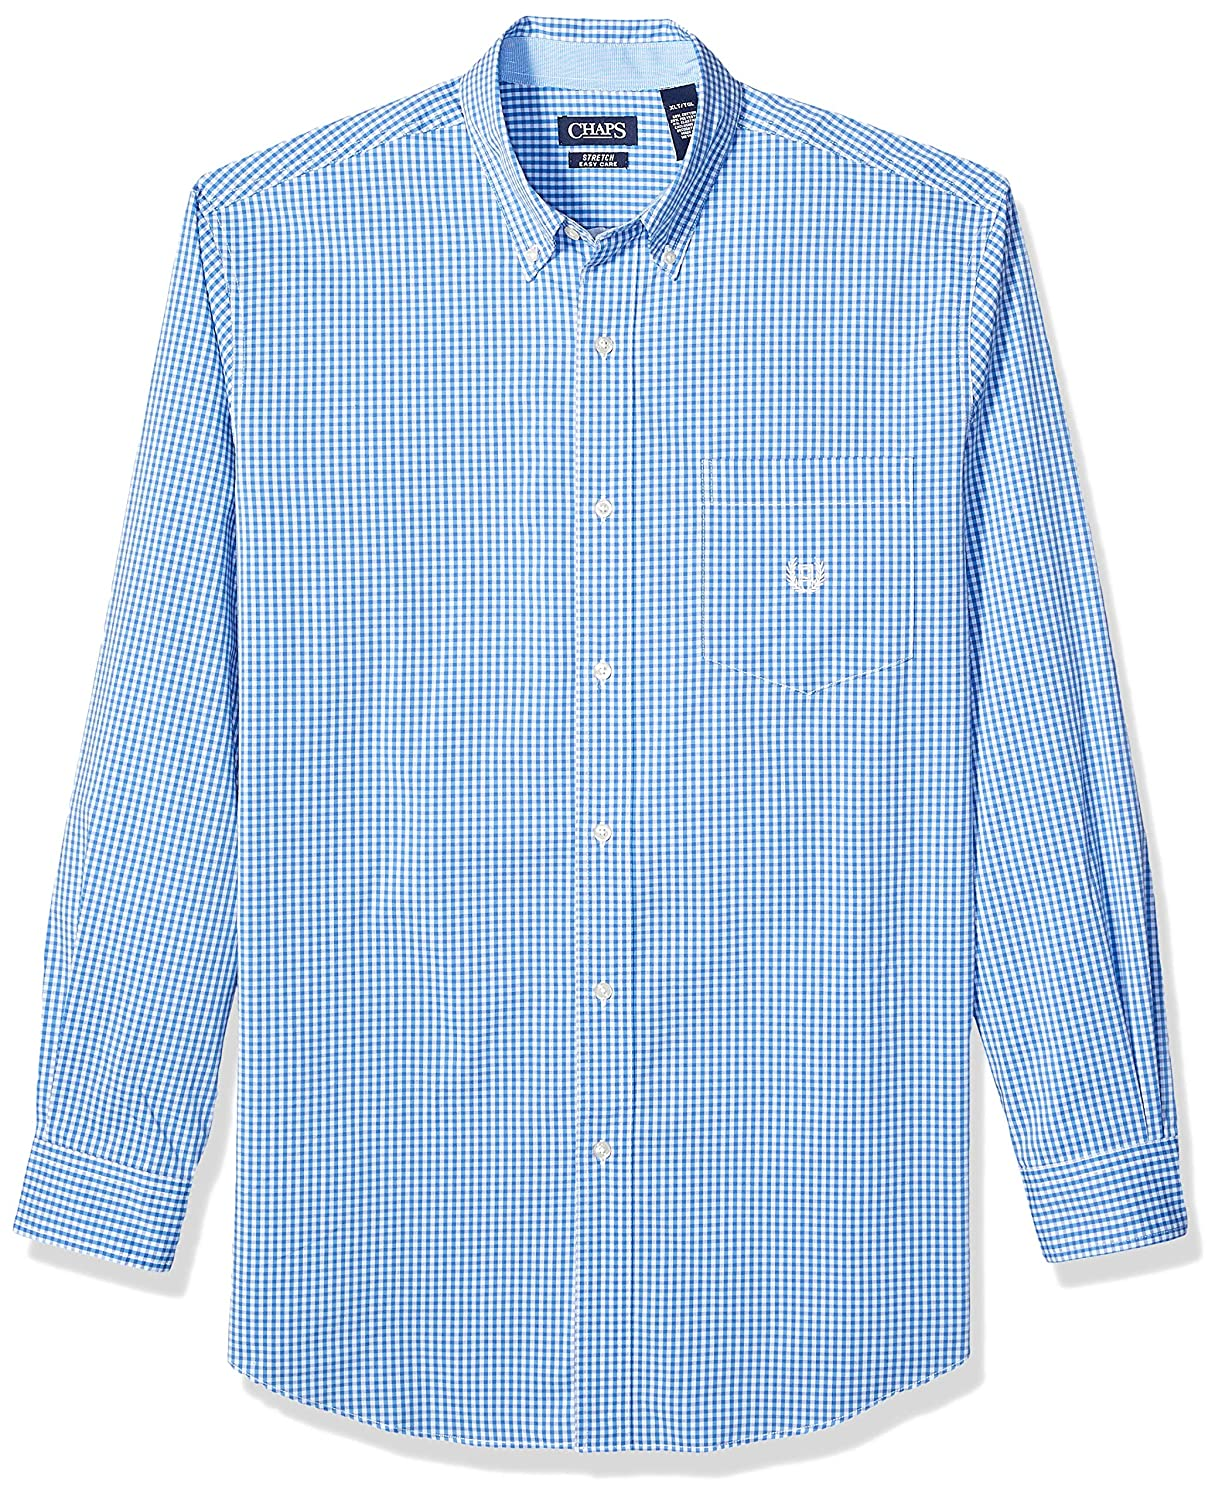 Chaps Mens Big and Tall Long Sleeve Stretch Easy Care Button Down Shirt